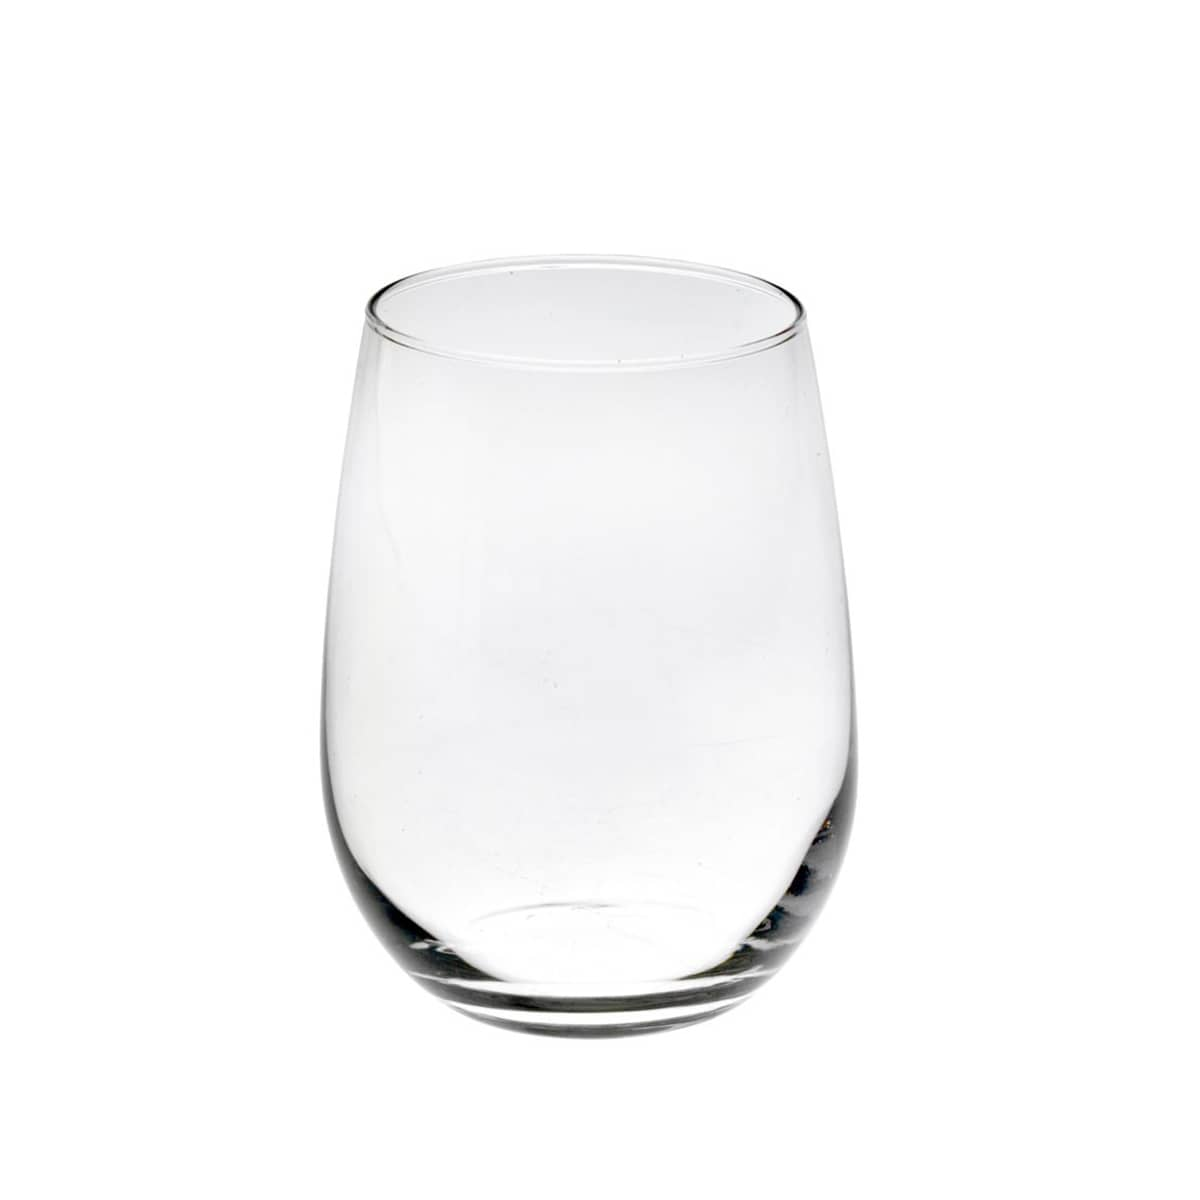 10 Wine Glasses That Can Go in the Dishwasher: gallery image 8